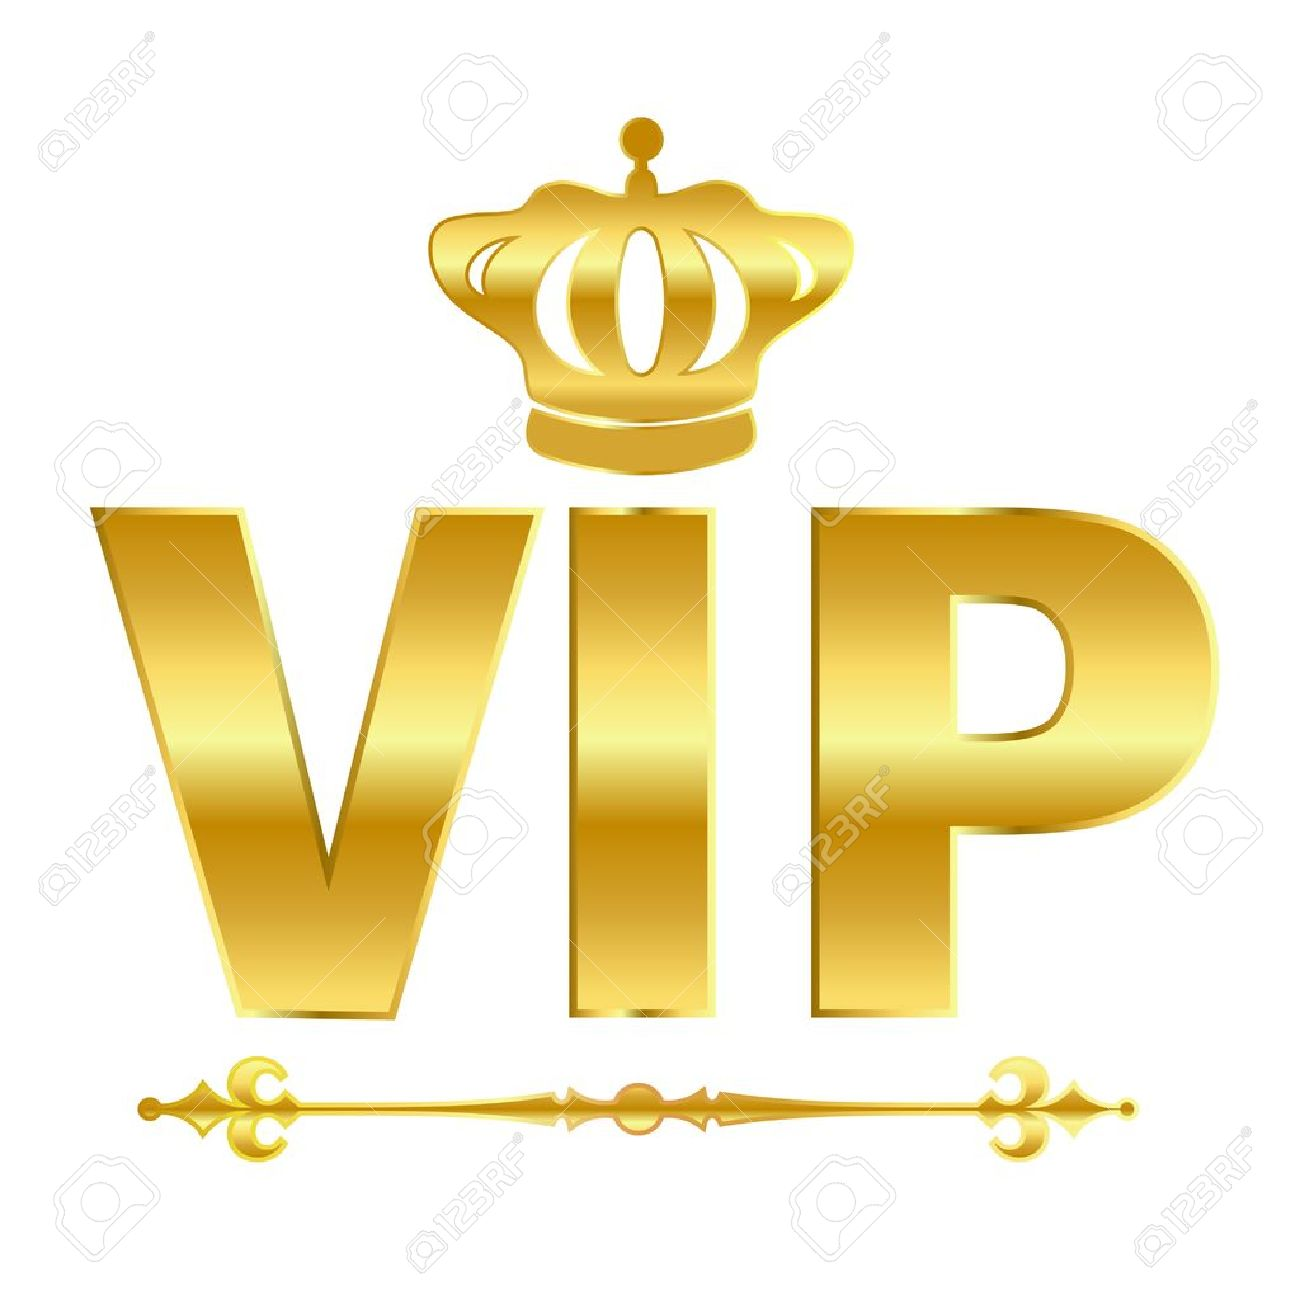 889 Vip Ticket Illustrations Cliparts And Royalty Free Vip – Vip Ticket Template